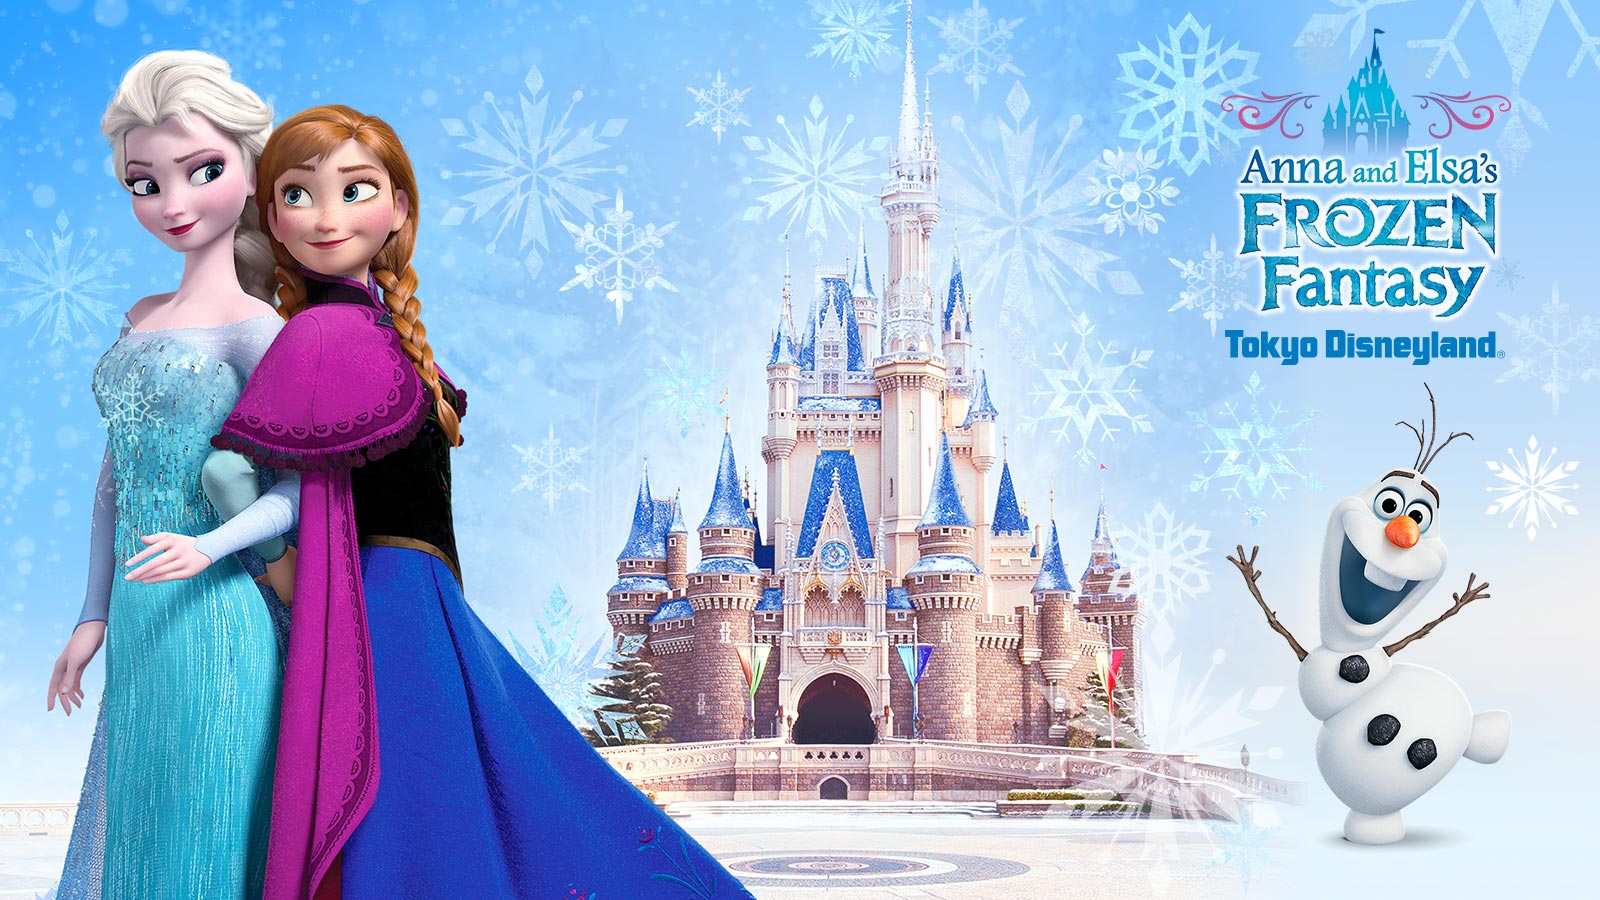 Anna and Elsa's Frozen Fantasy